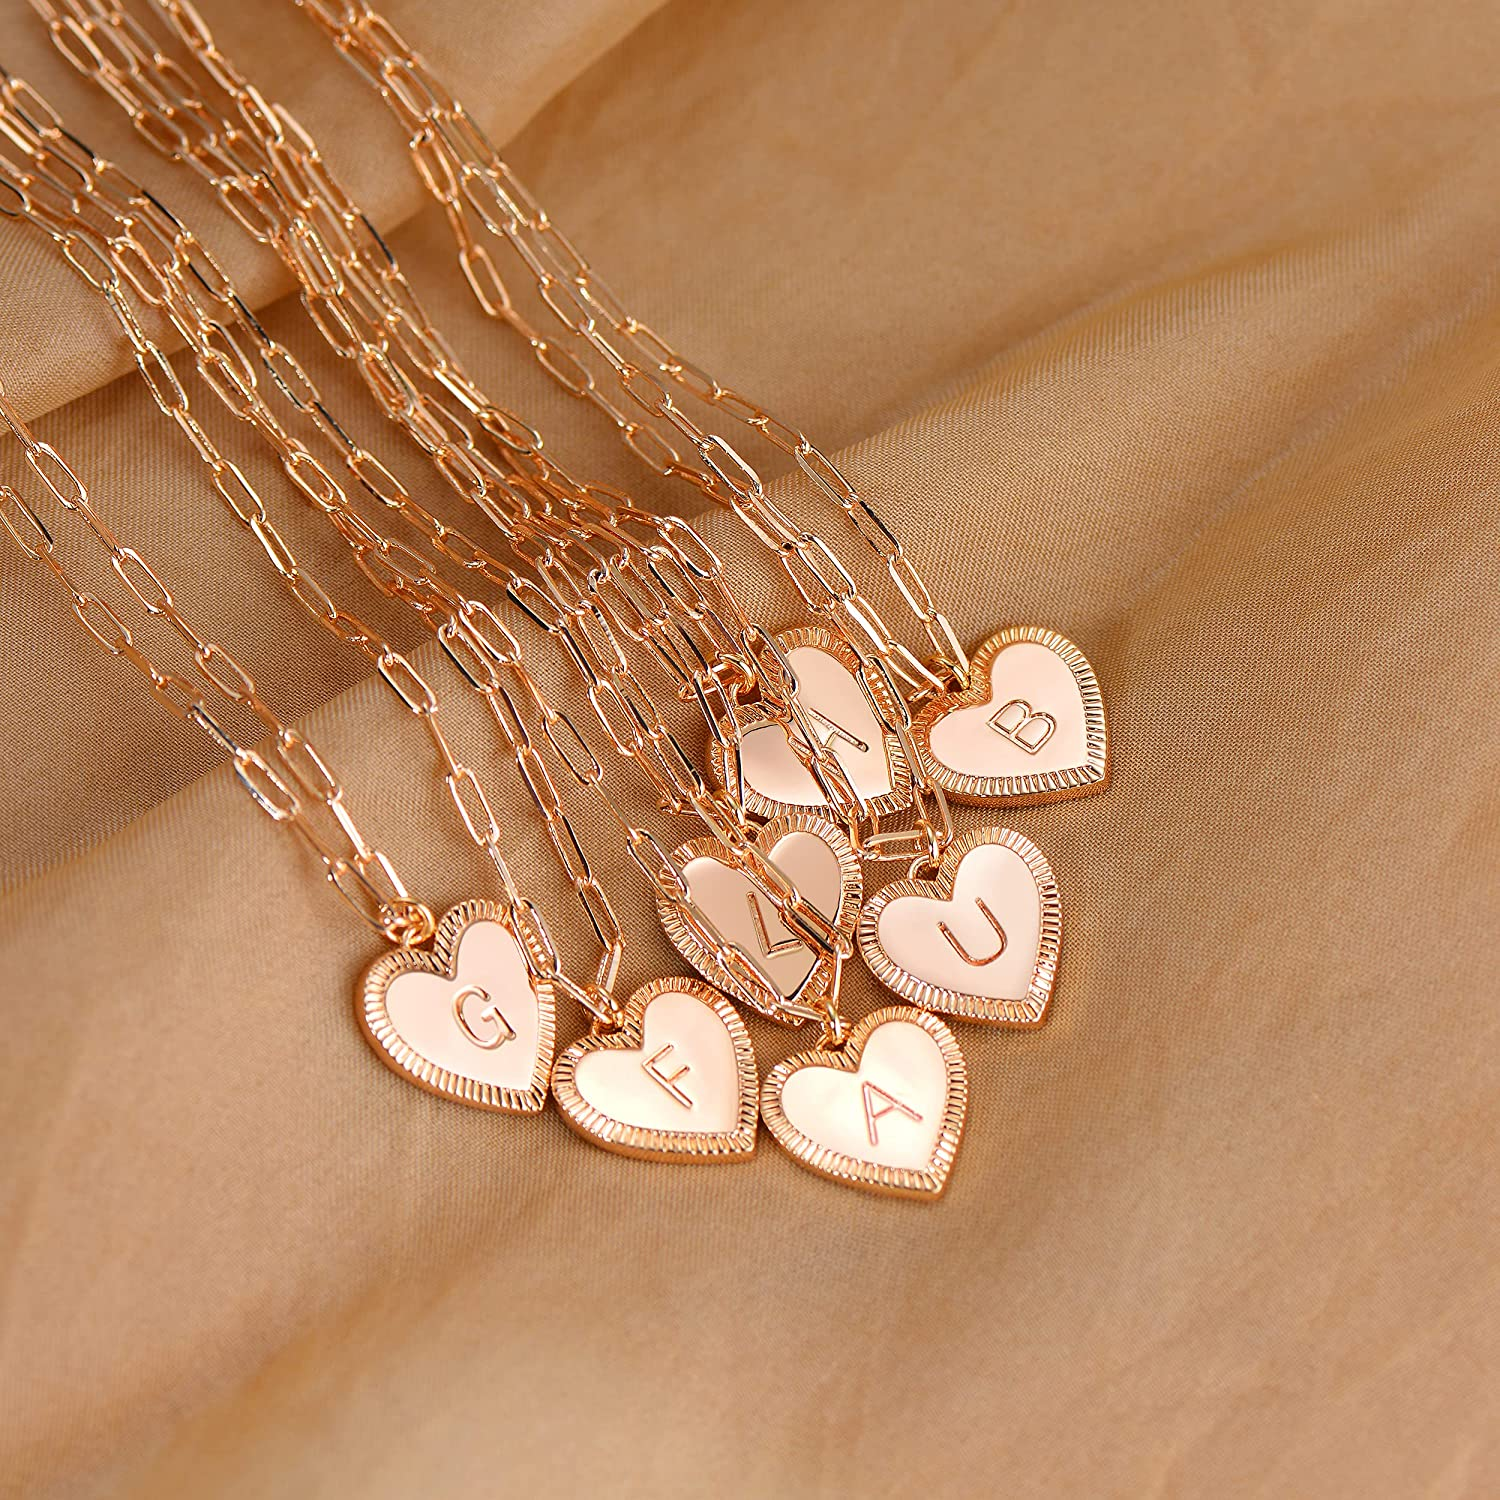 Layered Heart Initial Gold Necklaces for Women Girls 14K Gold Choker Layering Paperclip Chain Necklace Personalized Letter Heart Pendant Dainty Jewelry